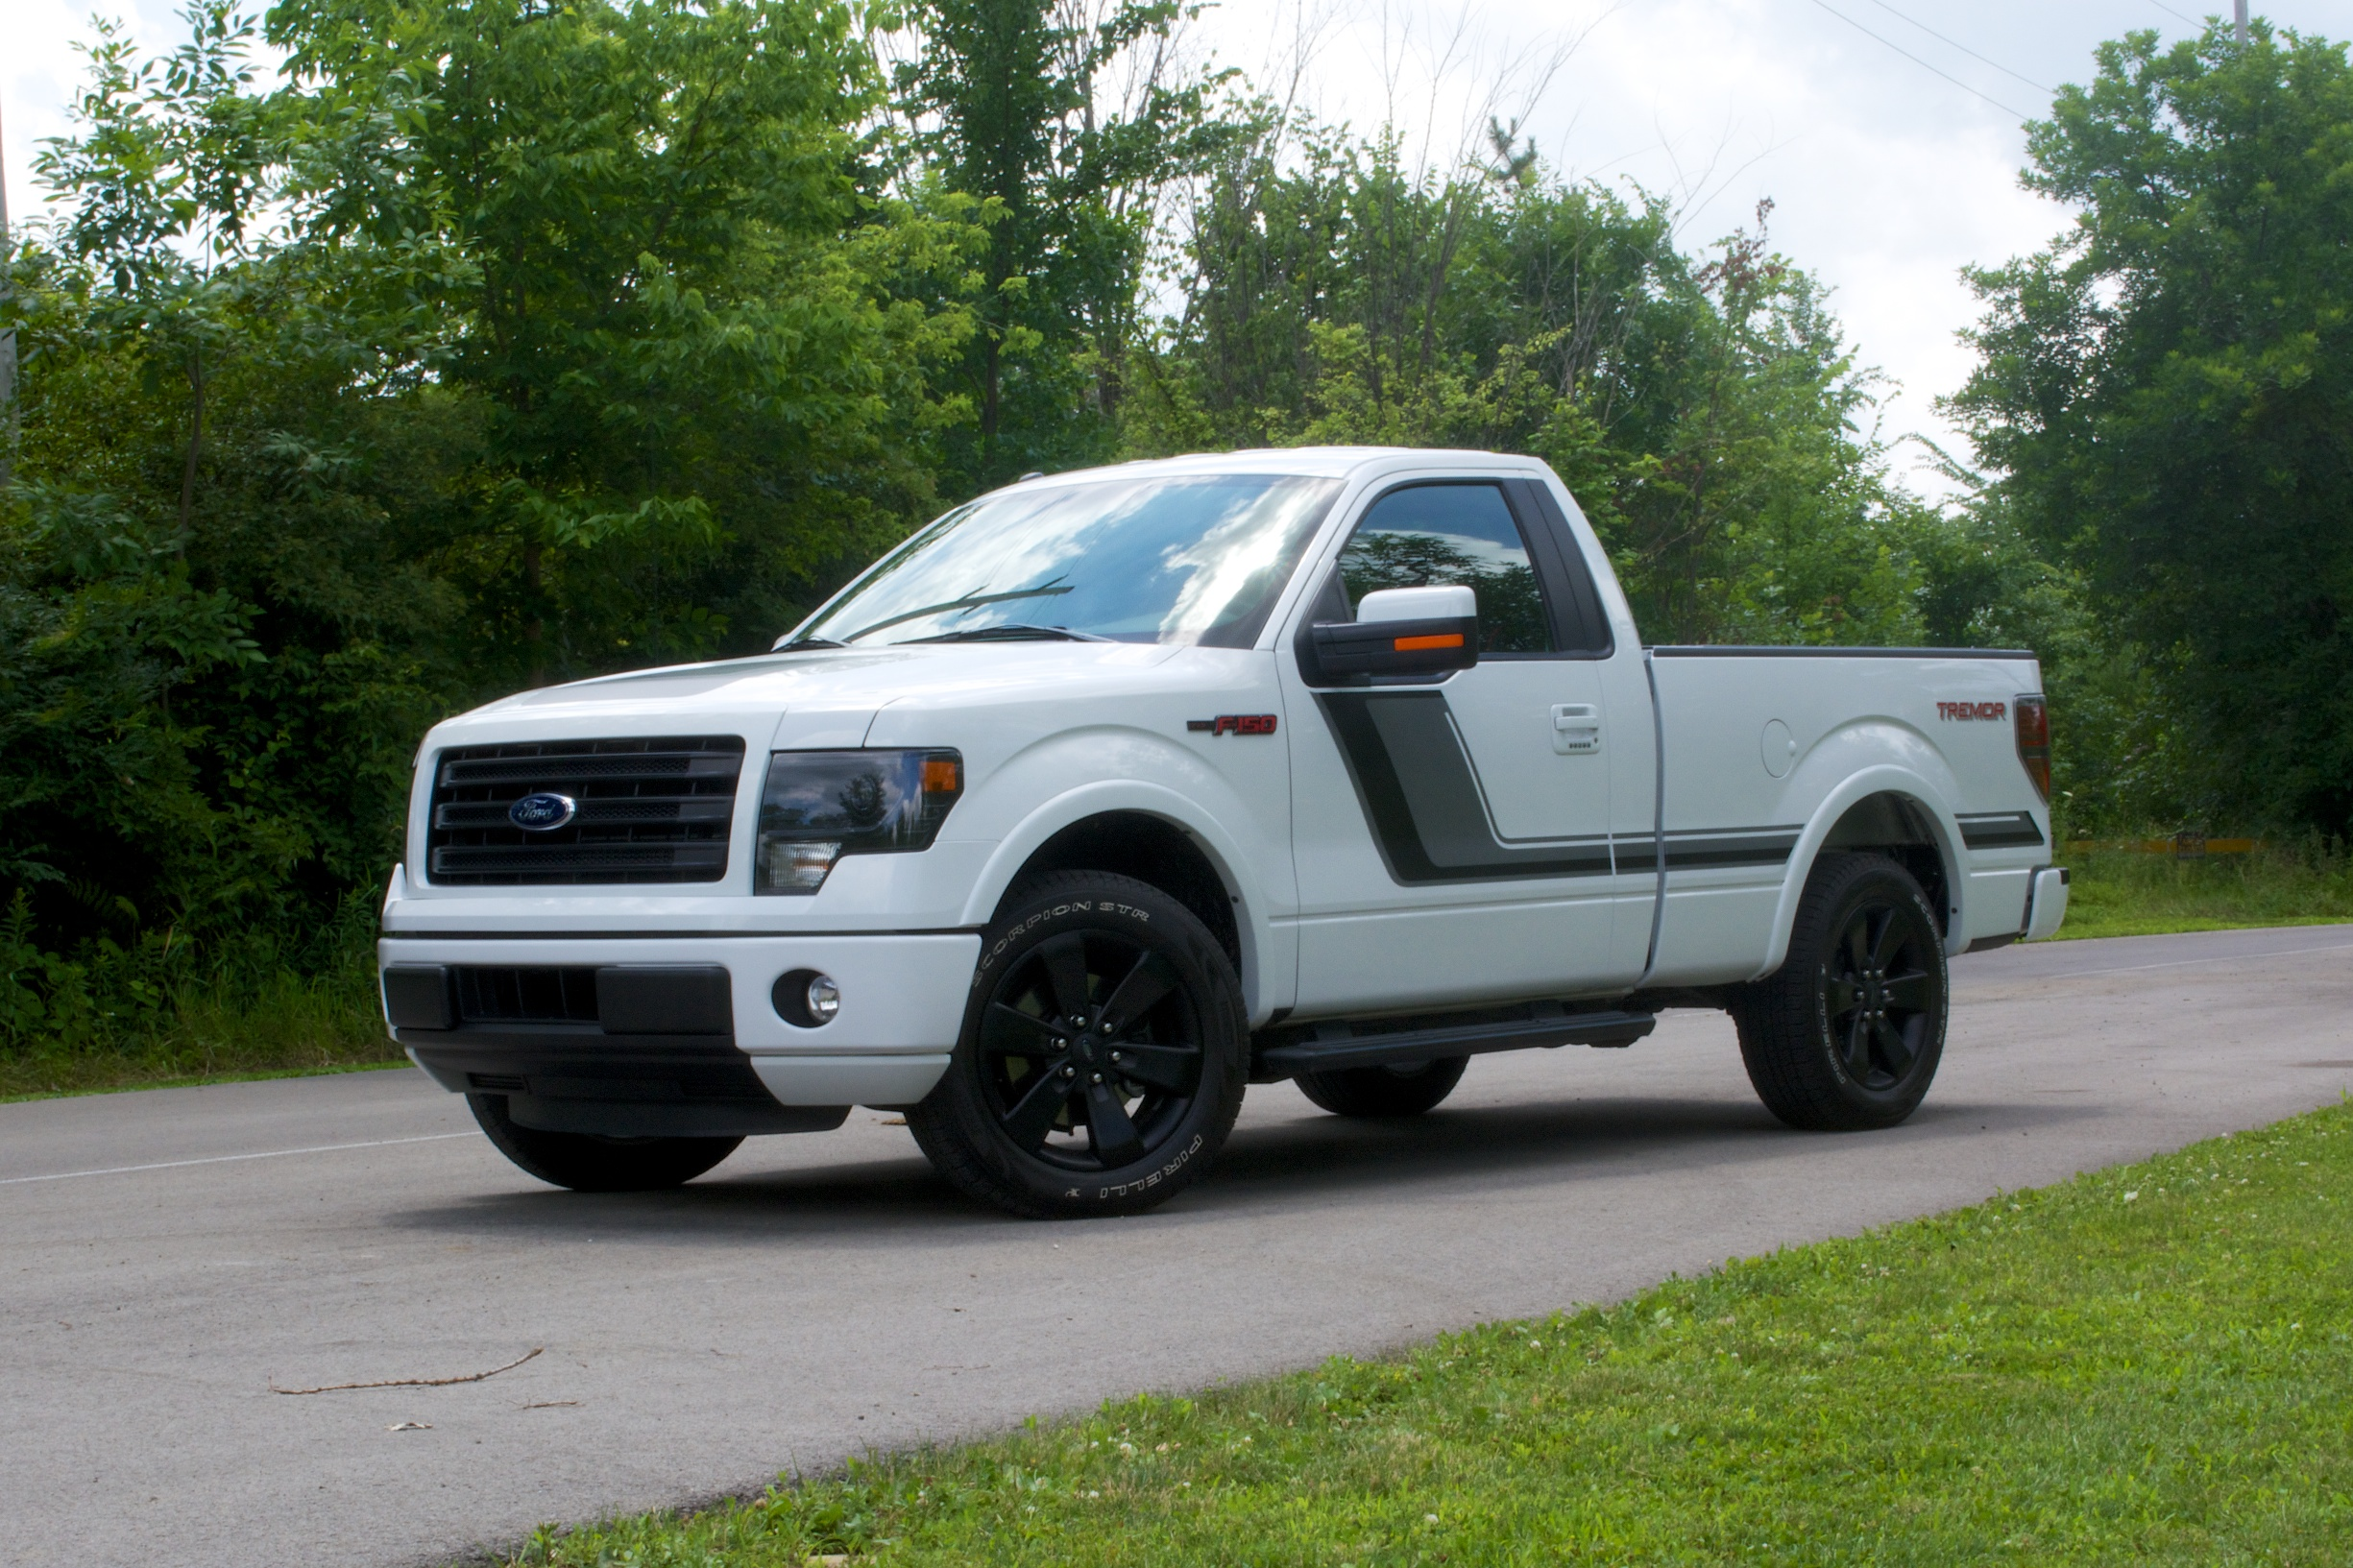 2014 Ford F-150 Tremor Backgrounds on Wallpapers Vista